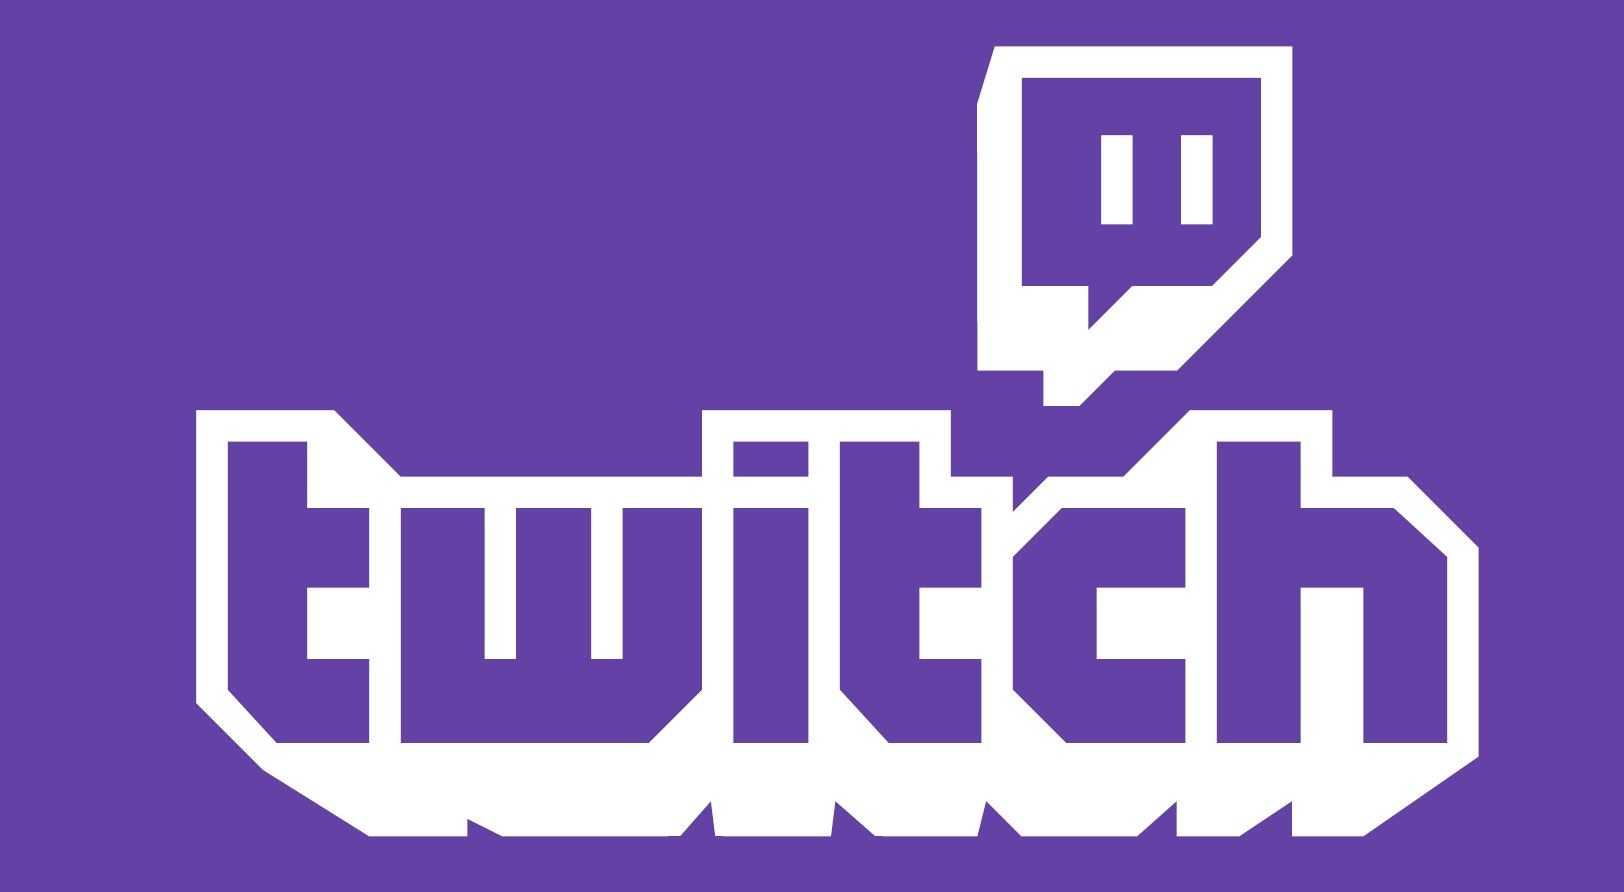 Twitch API code reveals plans for a 'Brand Safety Score' for streamers